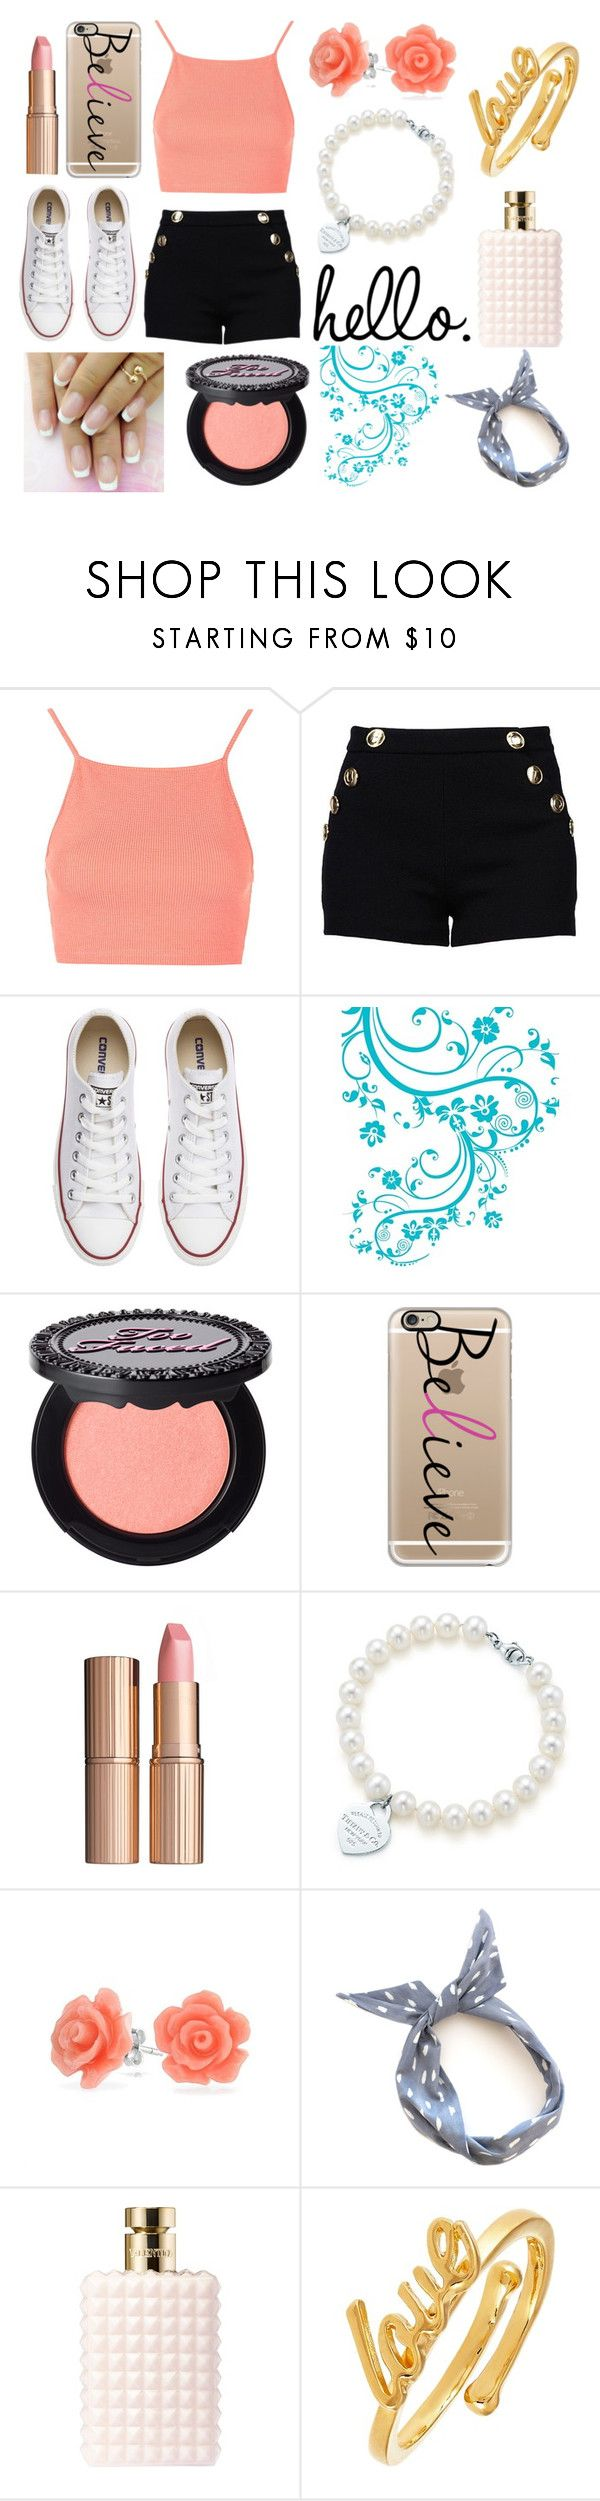 """Untitled #77"" by makeup19 ❤ liked on Polyvore featuring Topshop, Boutique Moschino, Converse, WALL, Too Faced Cosmetics, Casetify, Charlotte Tilbury, Tiffany & Co., Bling Jewelry and Valentino"